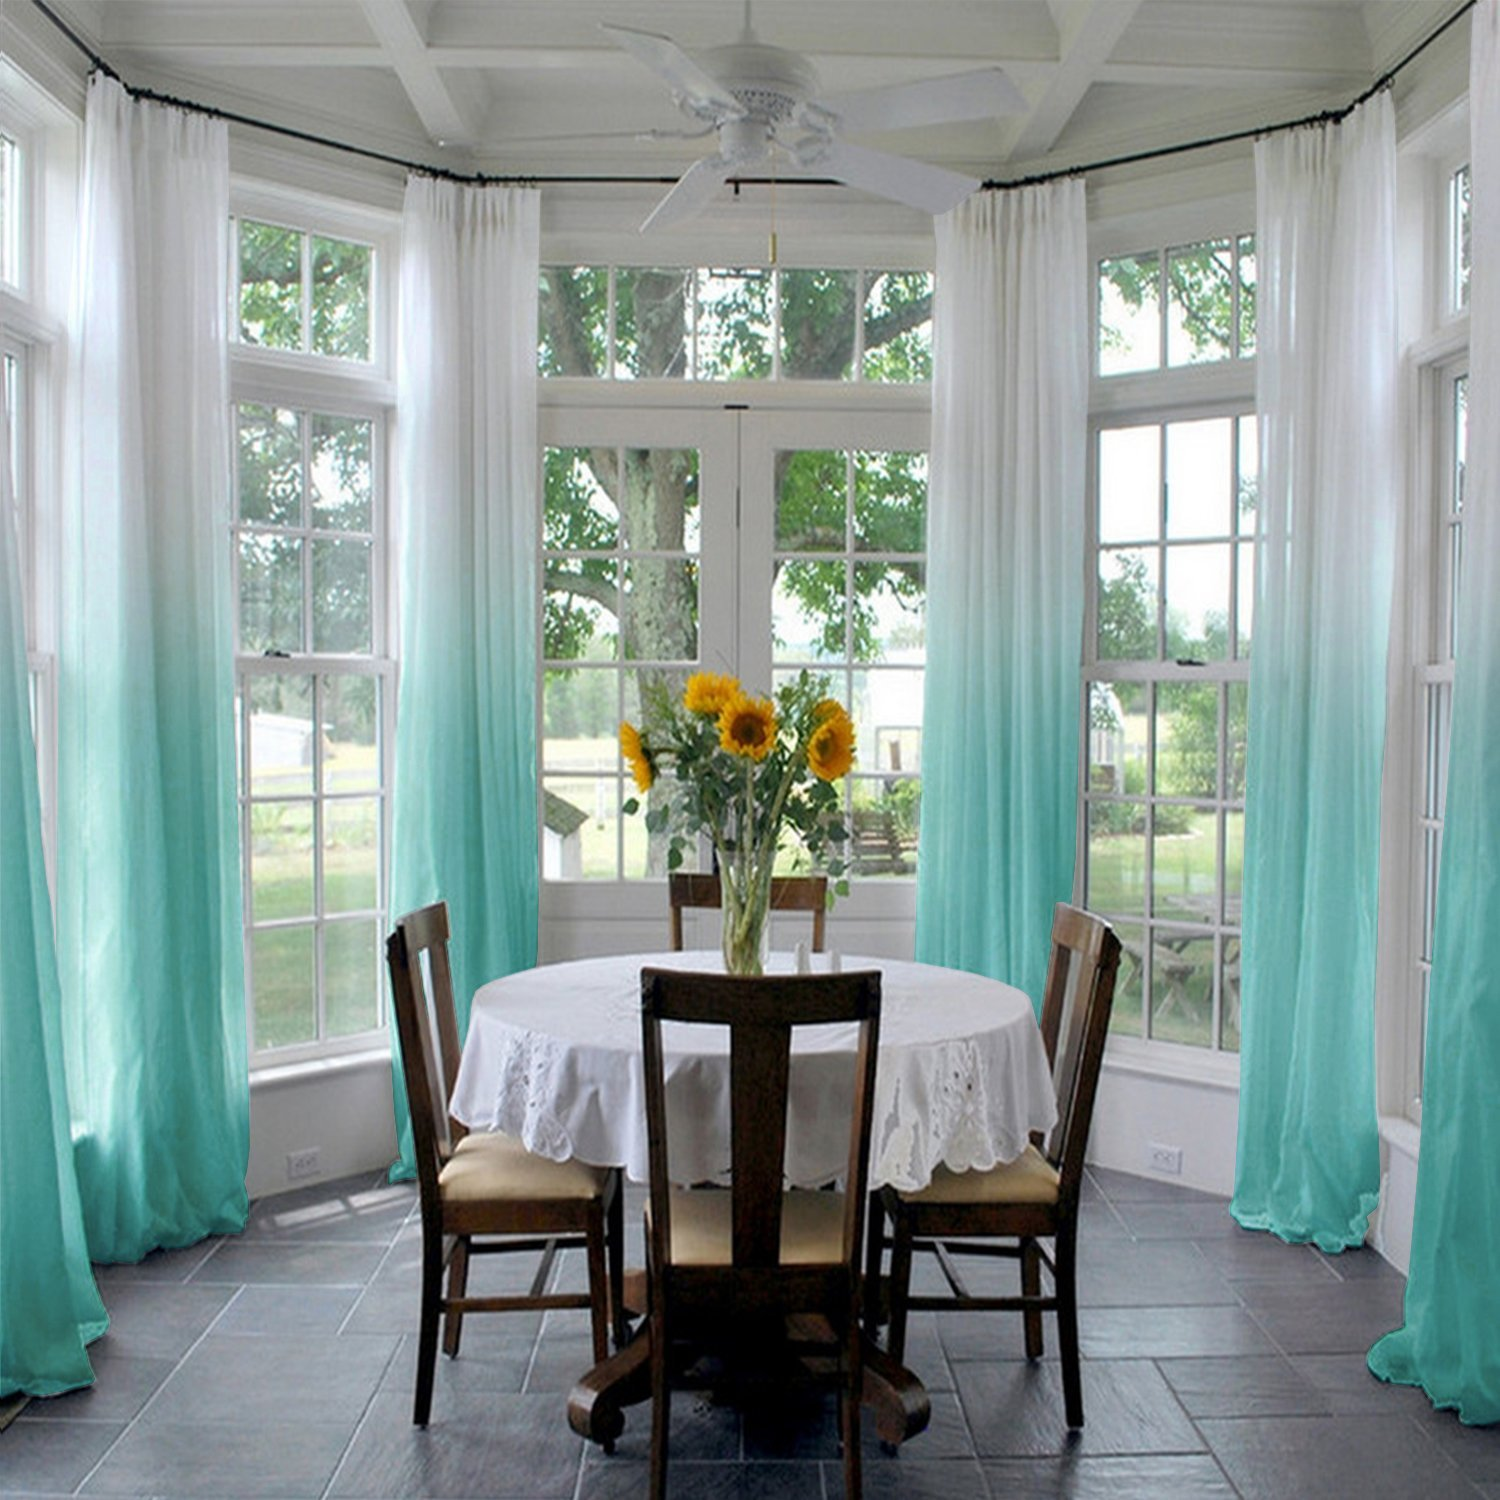 ChadMade Indoor Outdoor Gradient Ombre Sheer Curtain Pinch Pleat Teal 200'' W X 96'' L, Extra Wide Tulle Gradual Drapes (1 Panel)